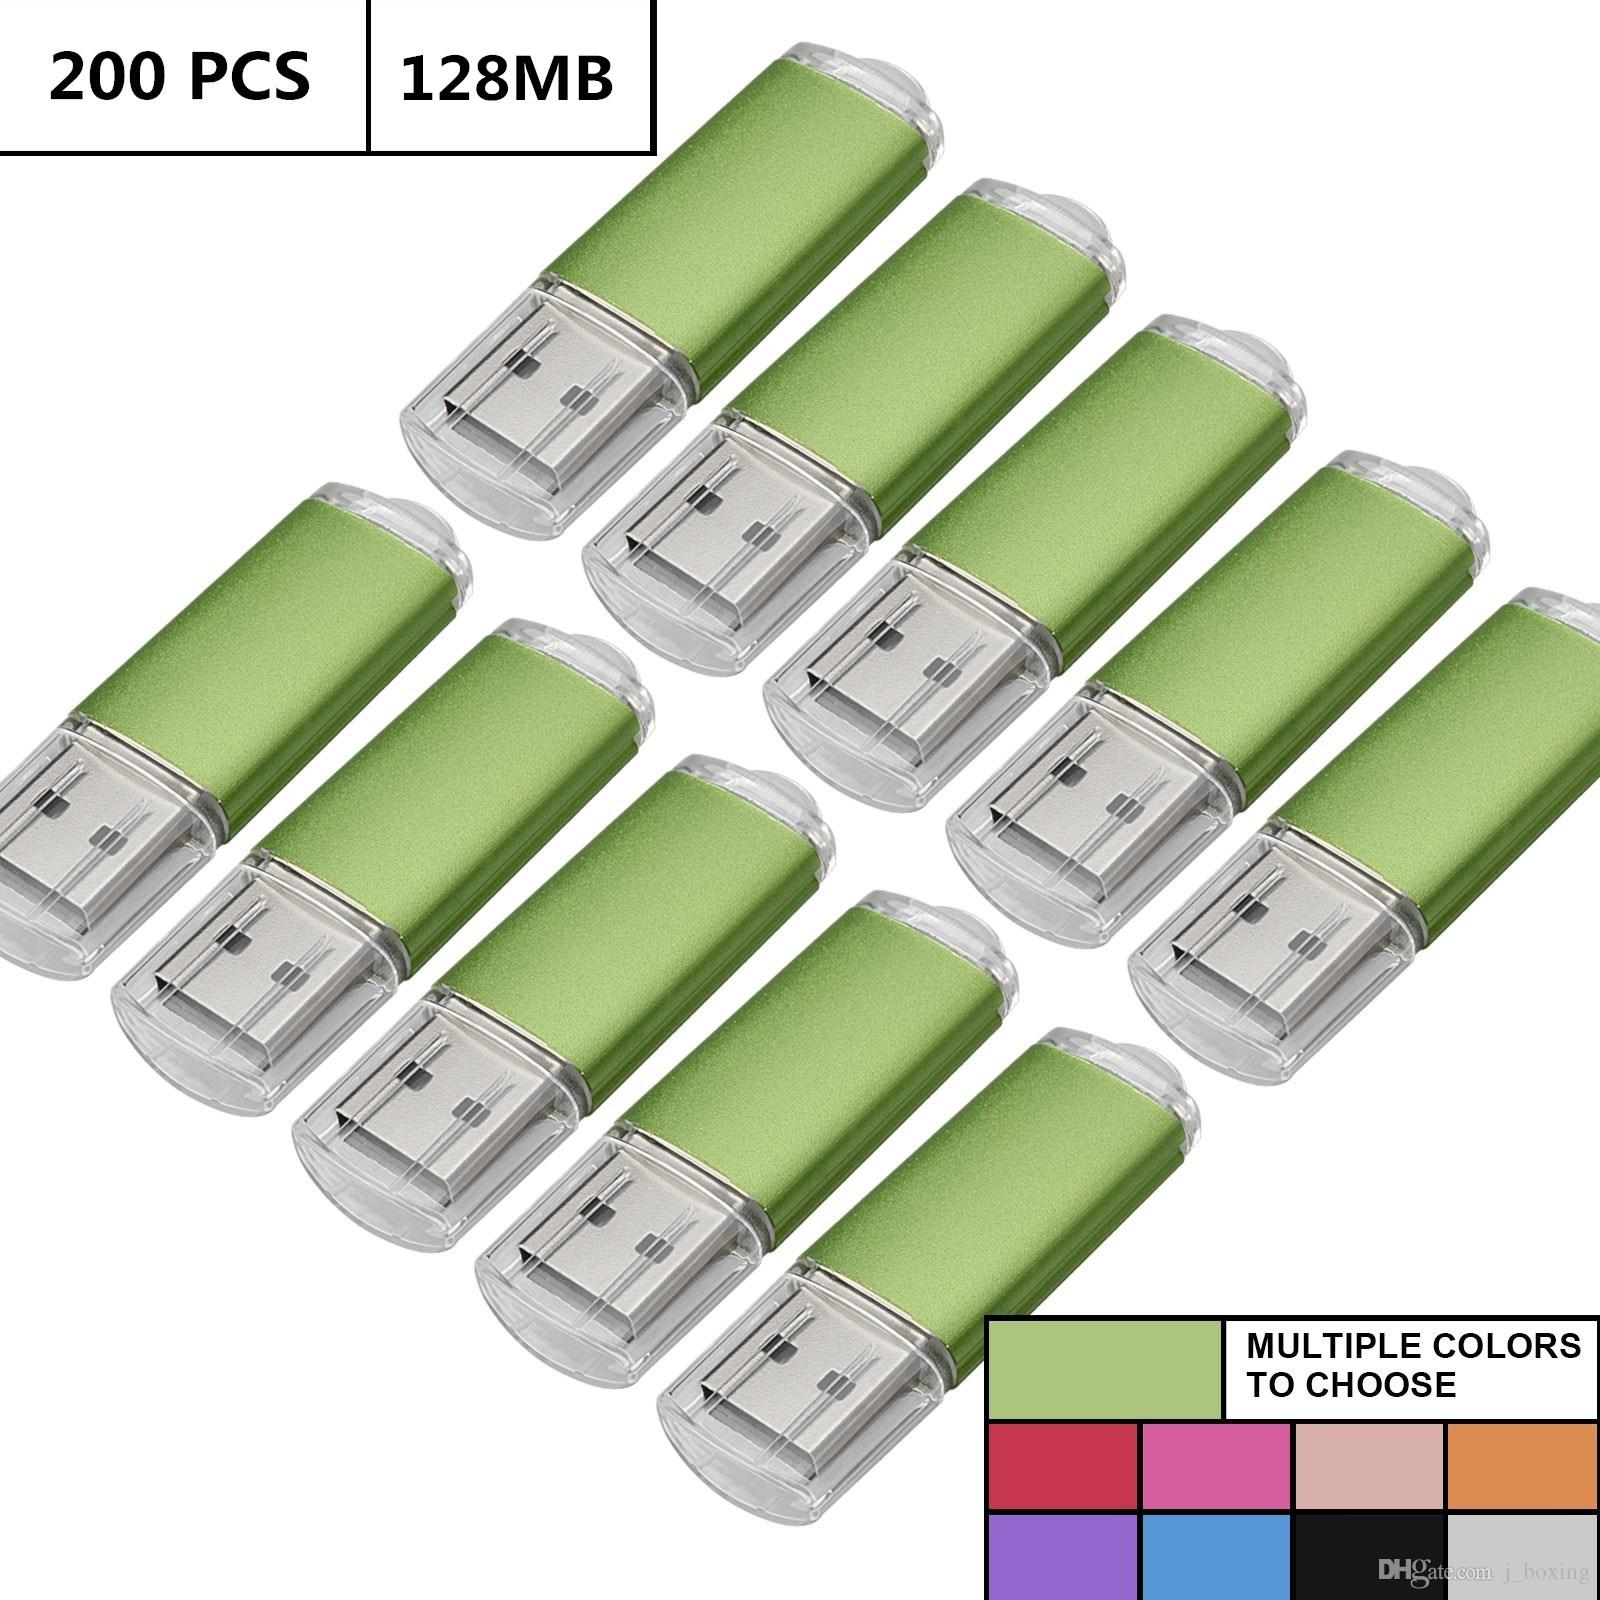 Green Bulk 200PCS 128MB USB 2.0 Flash Drive Rectangle Thumb Pen Drives Flash Memory Stick Storage for Computer Laptop Tablet Macbook U Disk